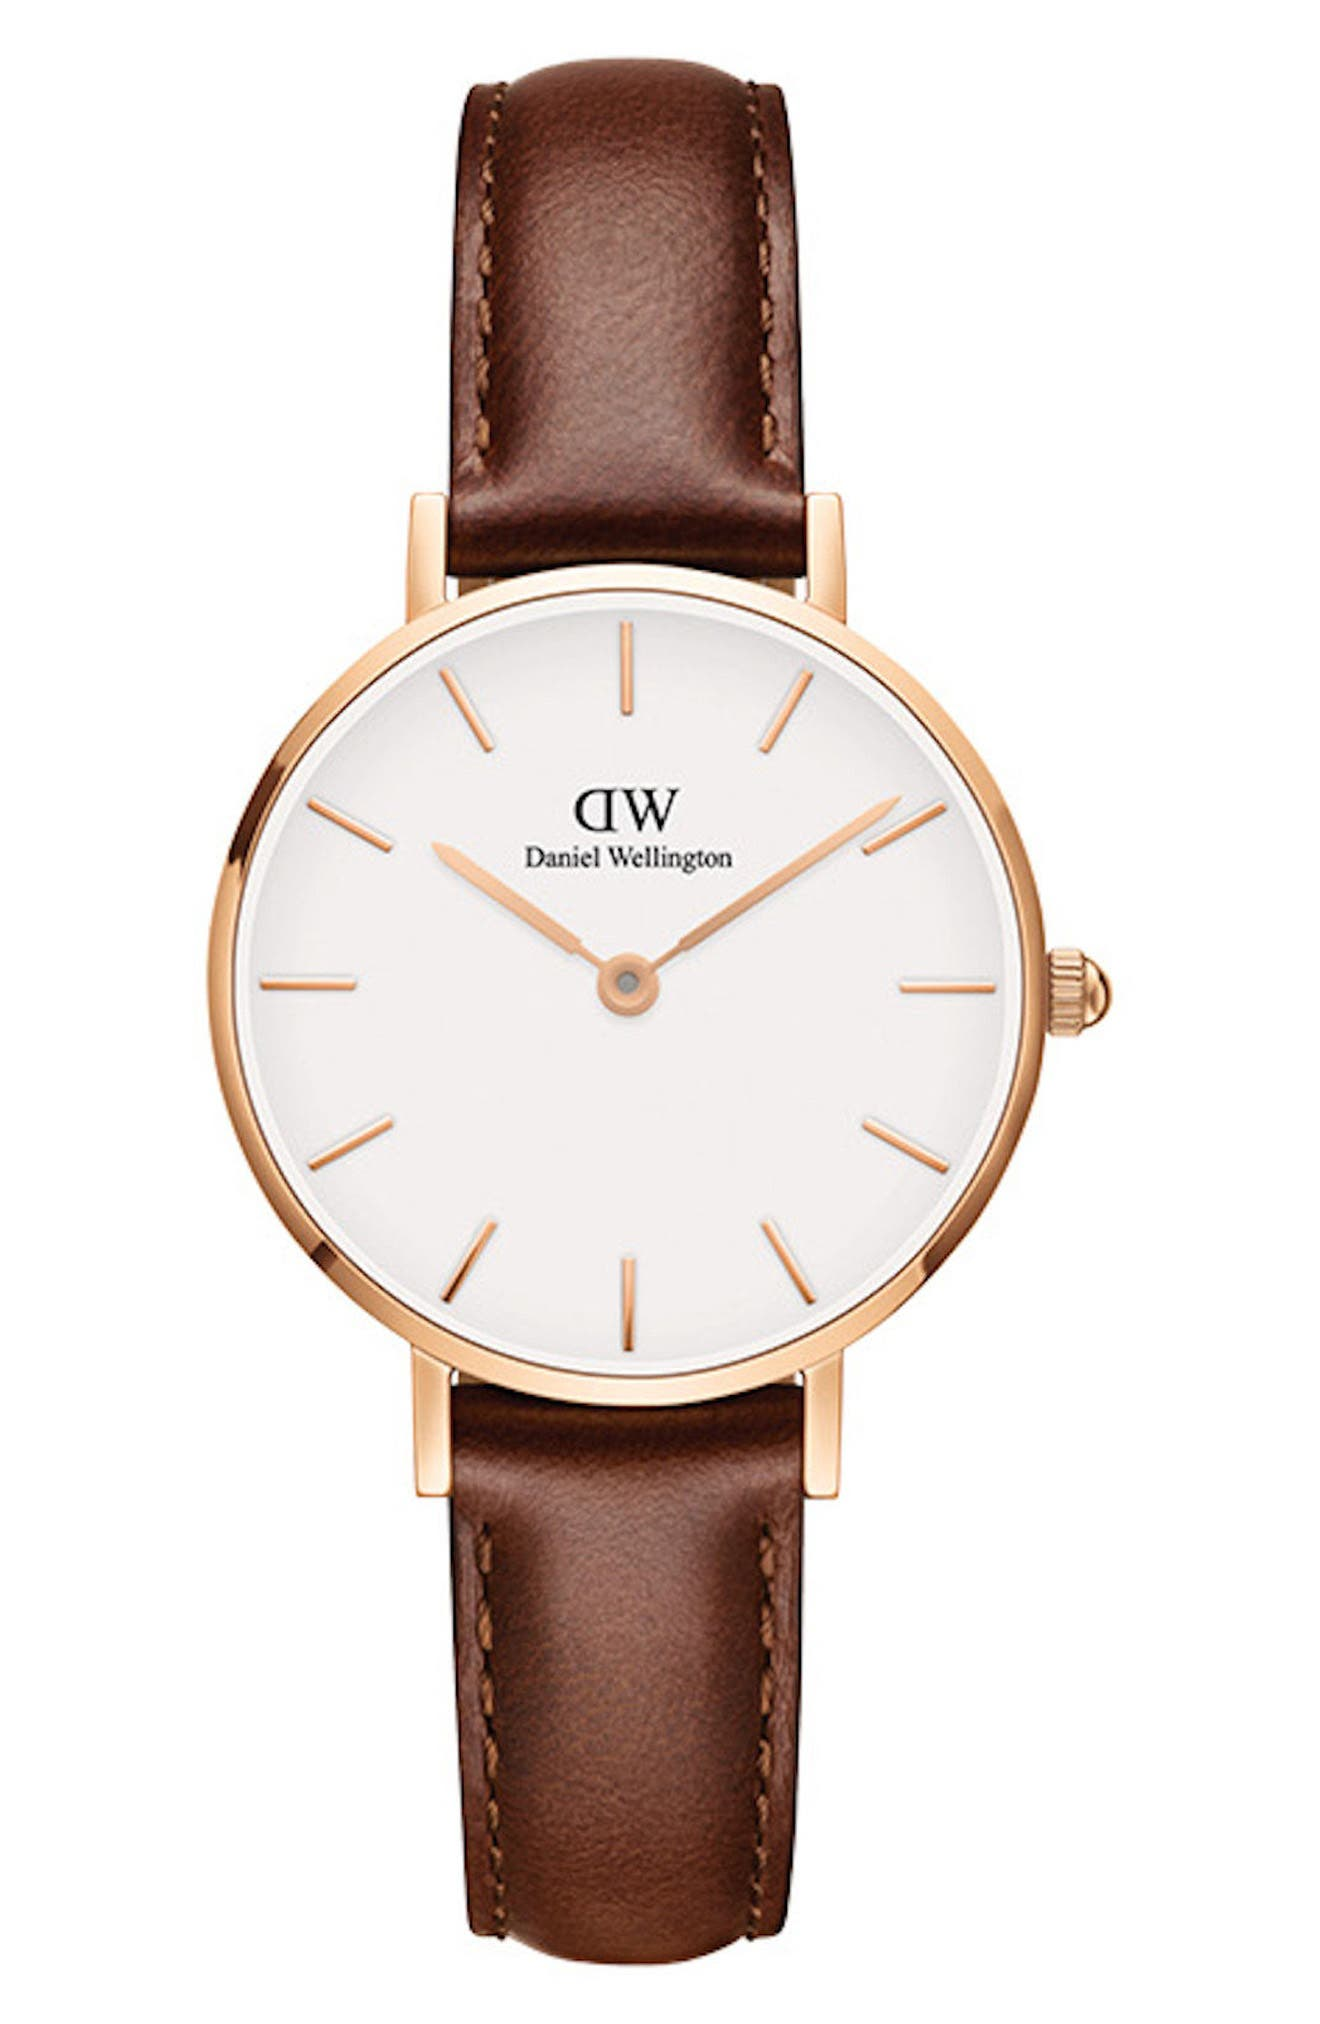 DANIEL WELLINGTON Classic Petite Leather Strap Watch, 28mm, Main, color, BROWN/ WHITE/ ROSE GOLD